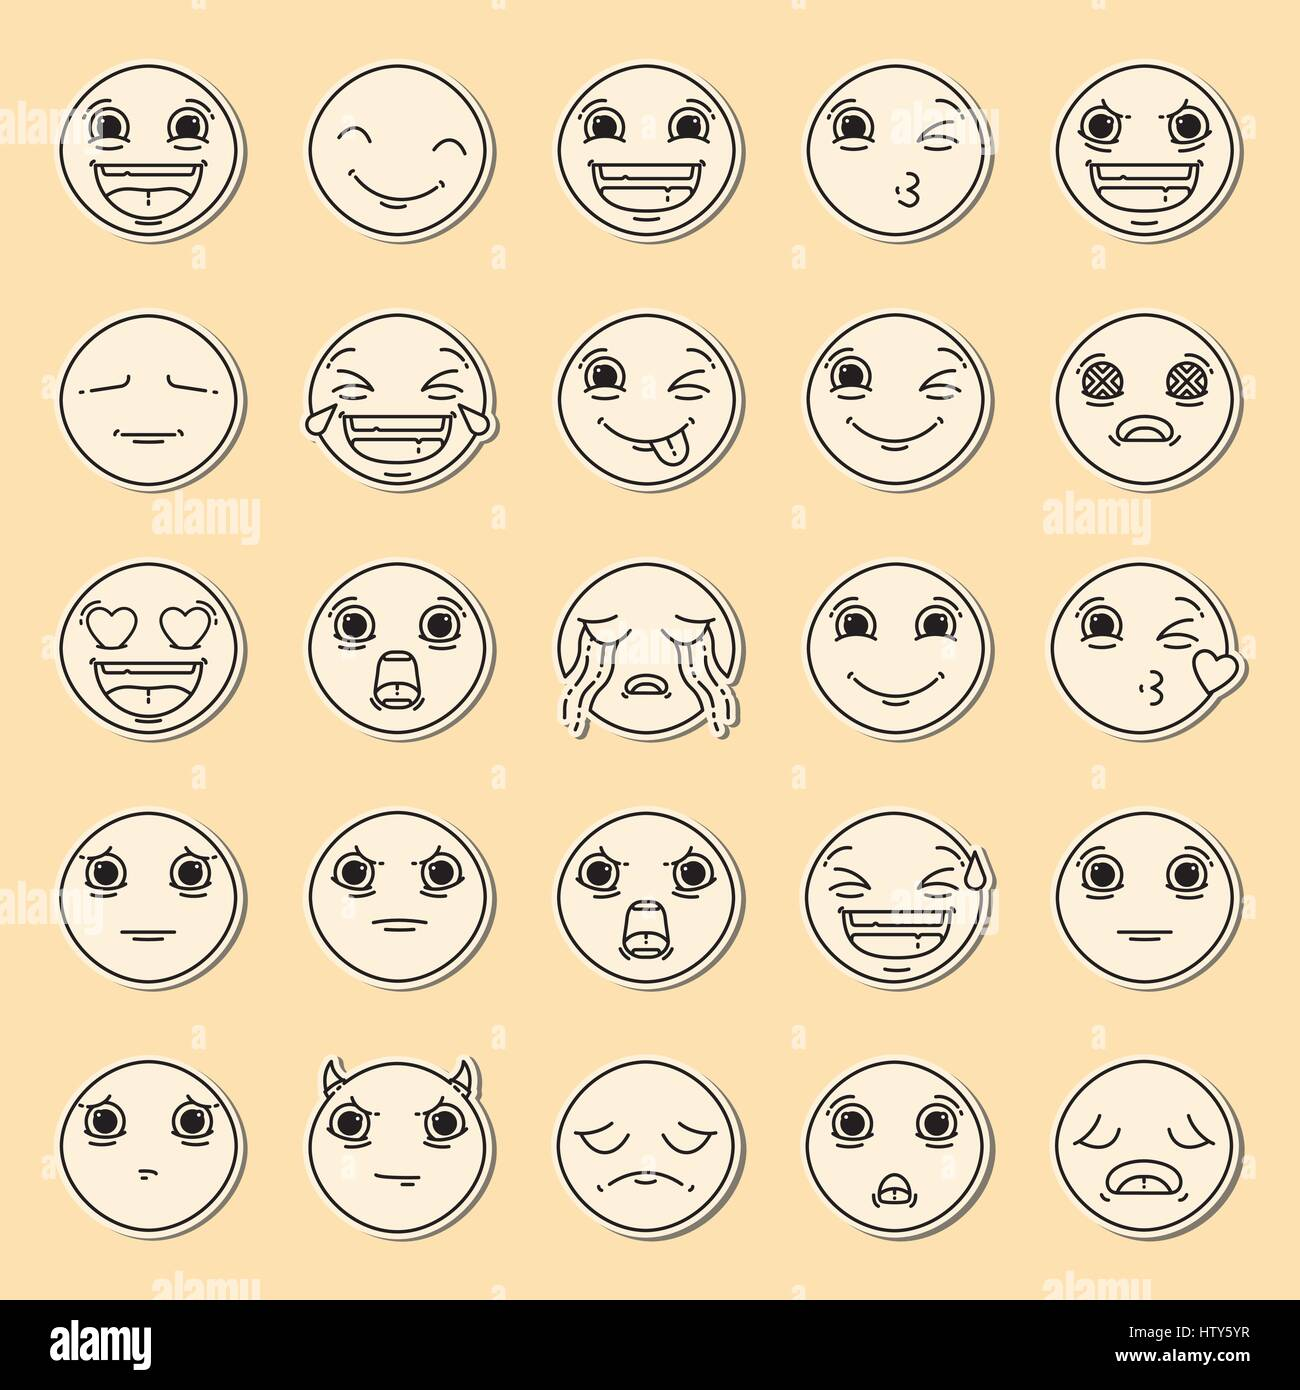 Vector icon set of emoticons against yellow background - Stock Image